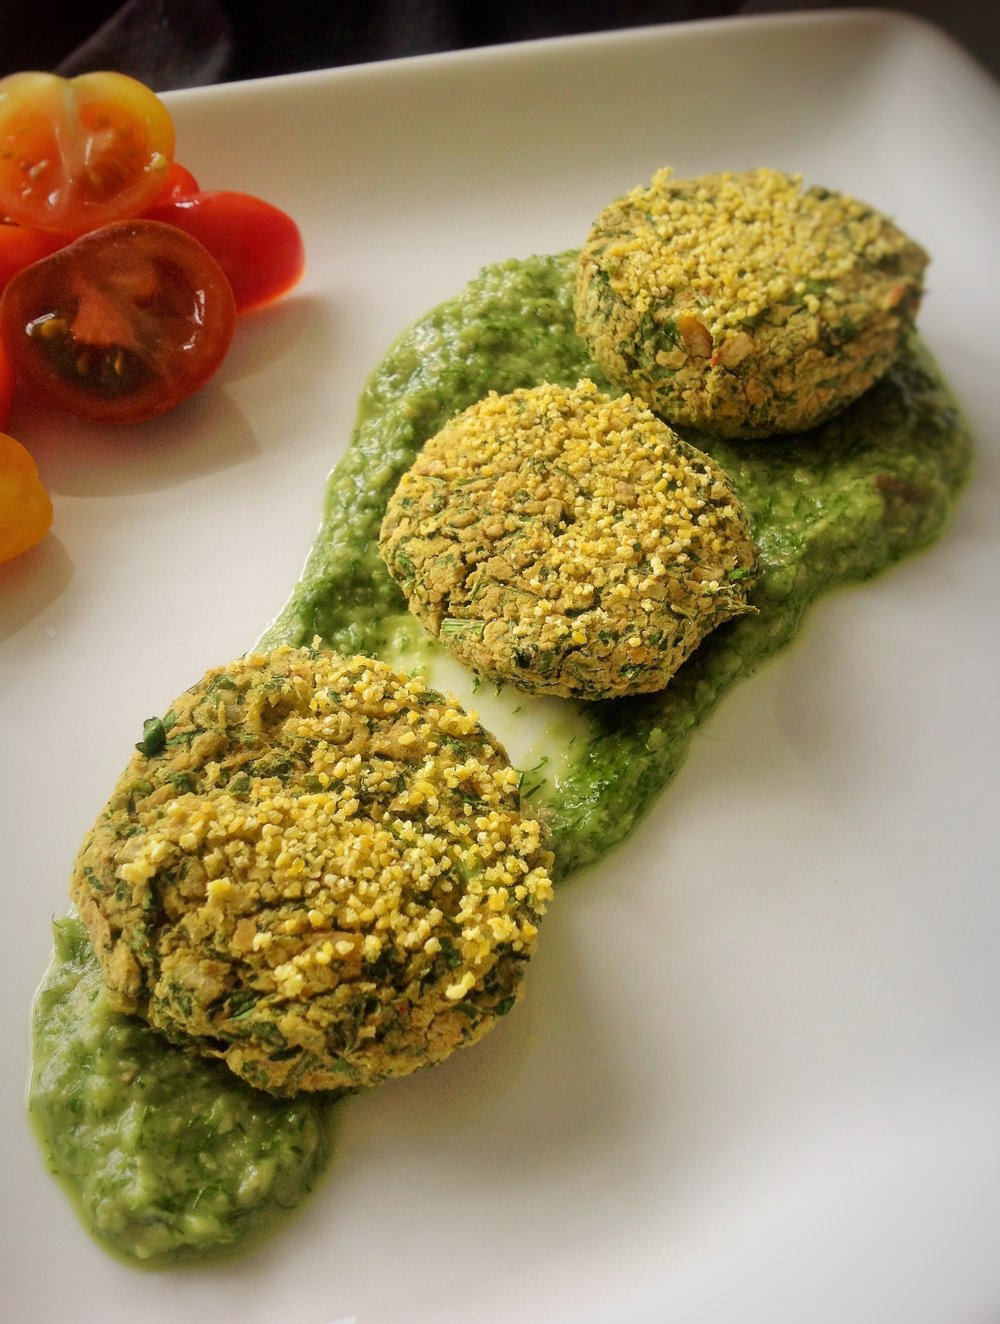 Baked Falafel Cakes - Healthy, Gluten-Free, Oil-Free, Plant-Based, Vegan